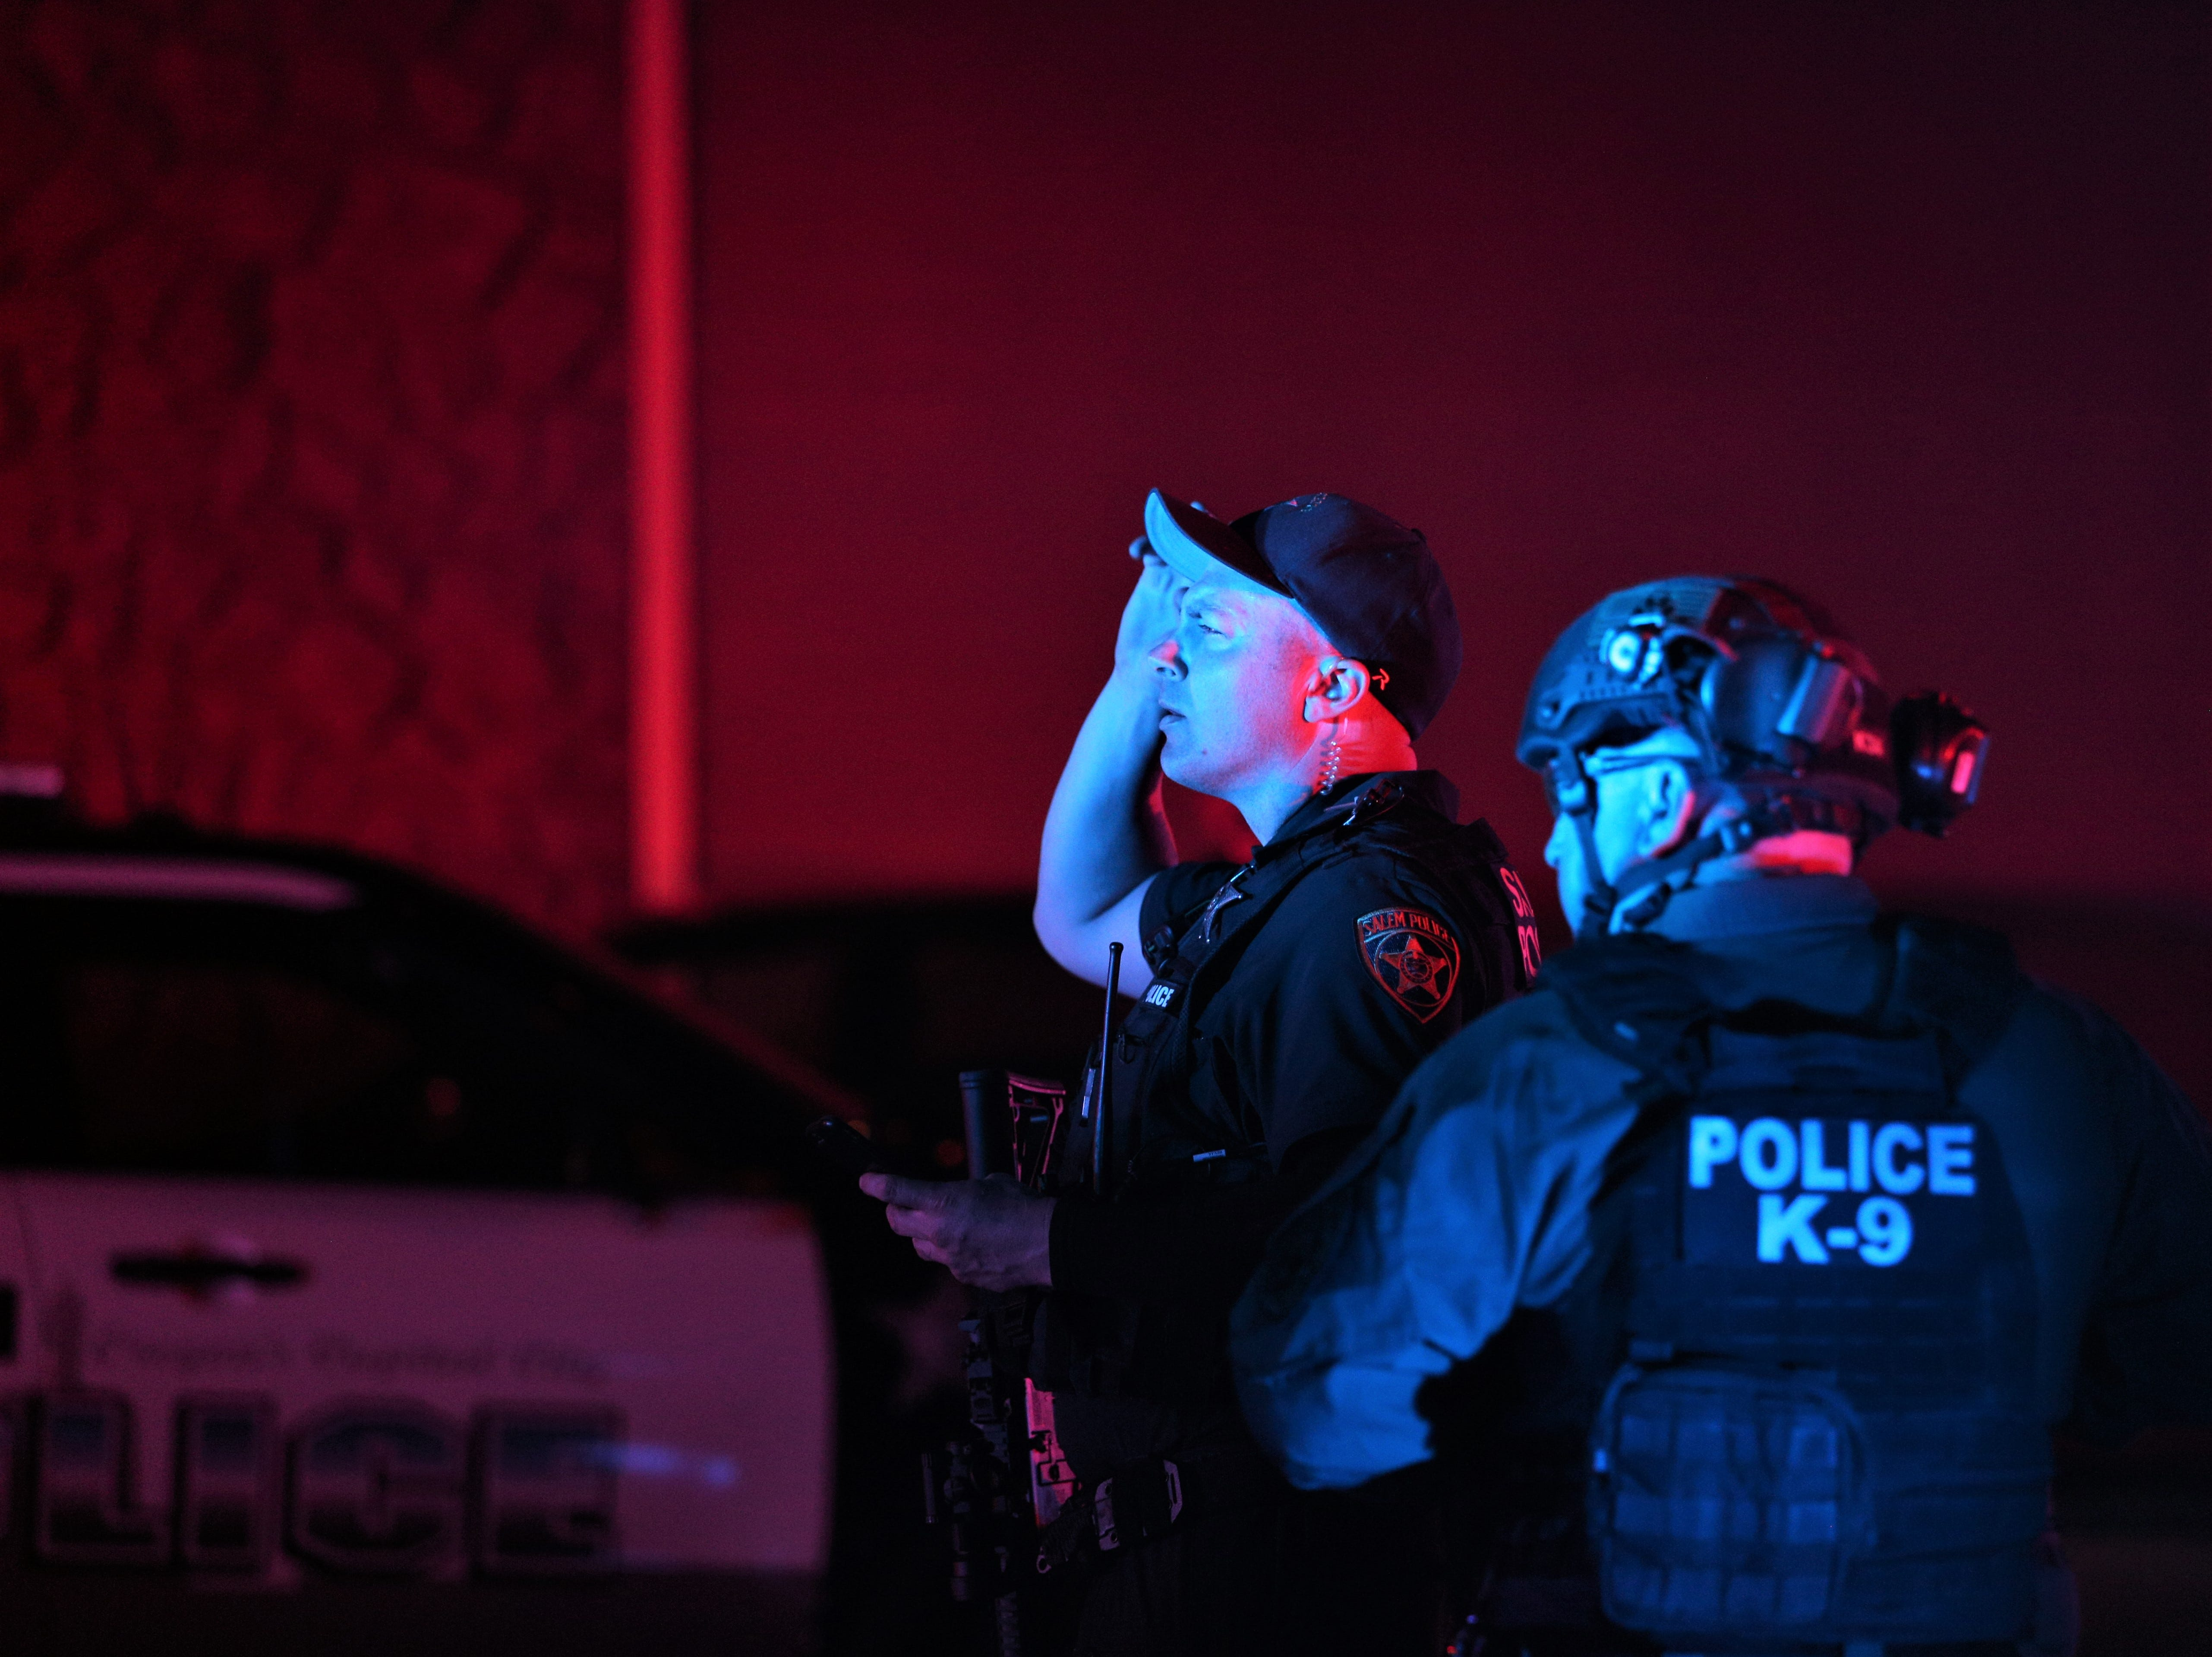 Law enforcement officers conduct a manhunt for a suspect who shot and injured a Salem Police officer near Highland Elementary School on May 14, 2019.